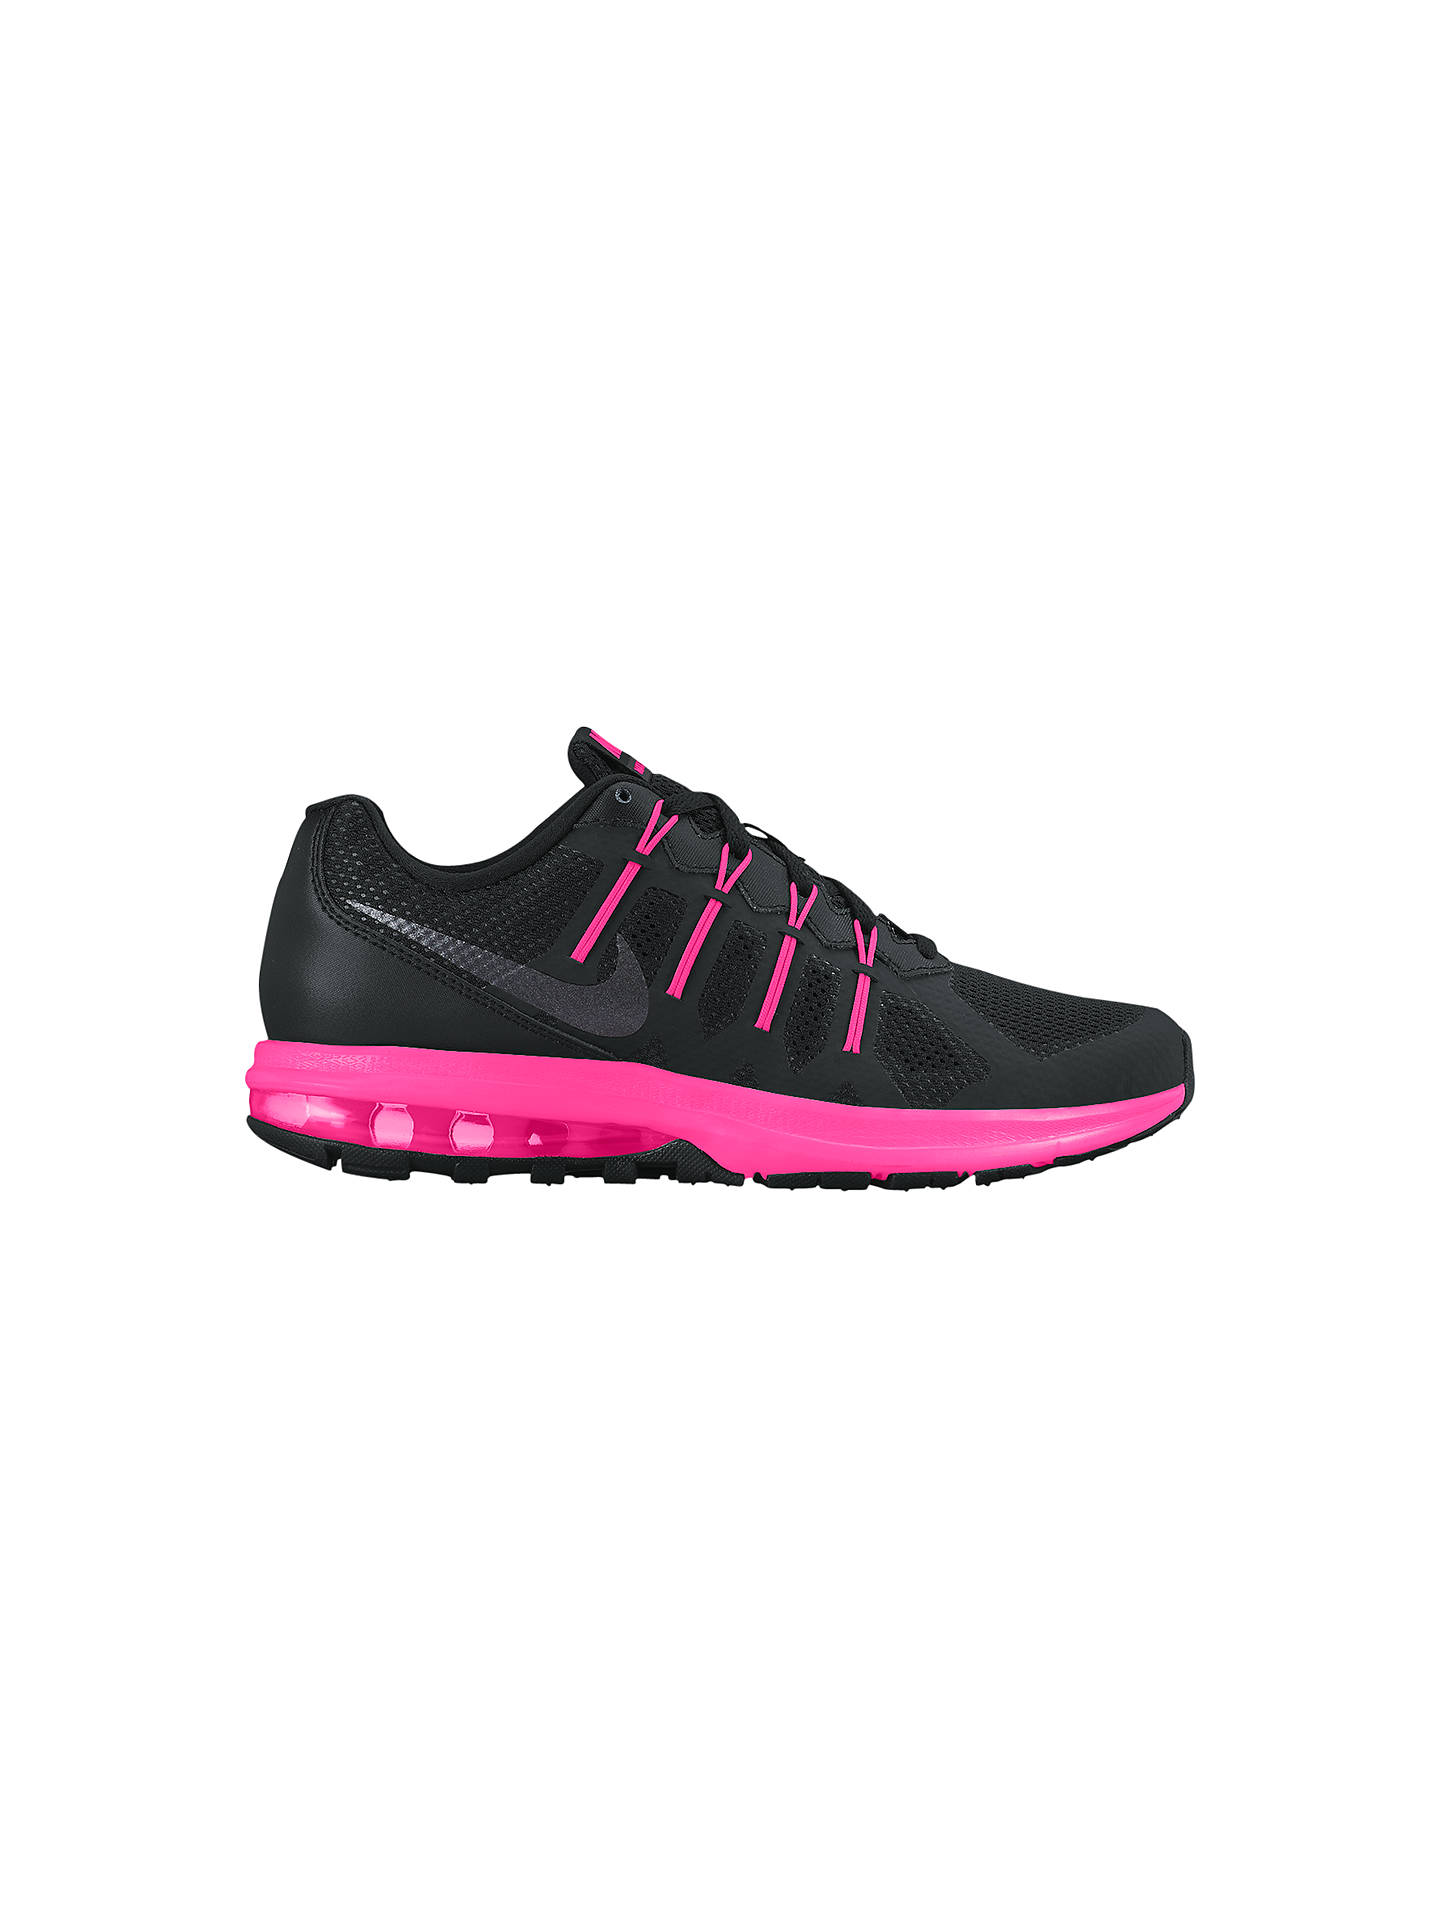 buy online 7abef 6bdec Buy Nike Air Max Dynasty Women s Running Shoes, Black Pink, 4 Online at ...